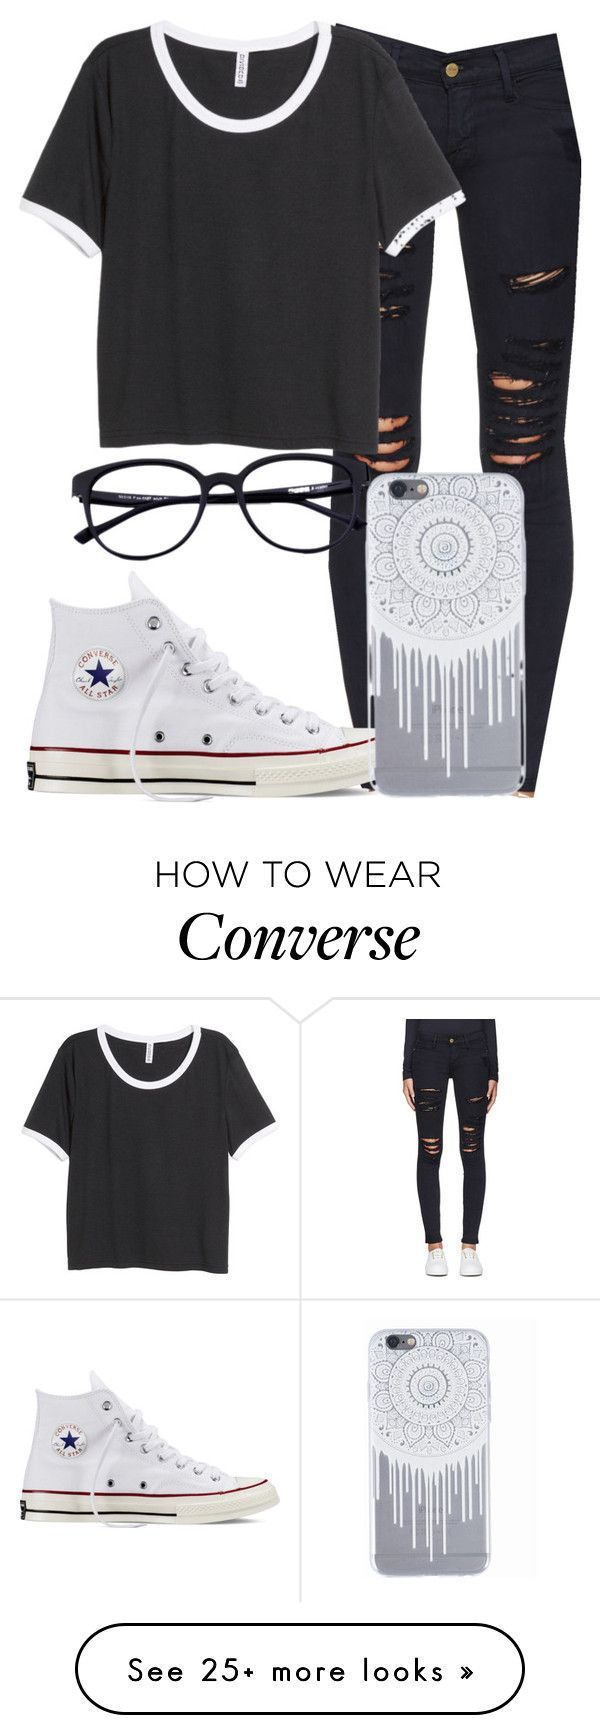 featuring Frame Denim, H&M and Converse